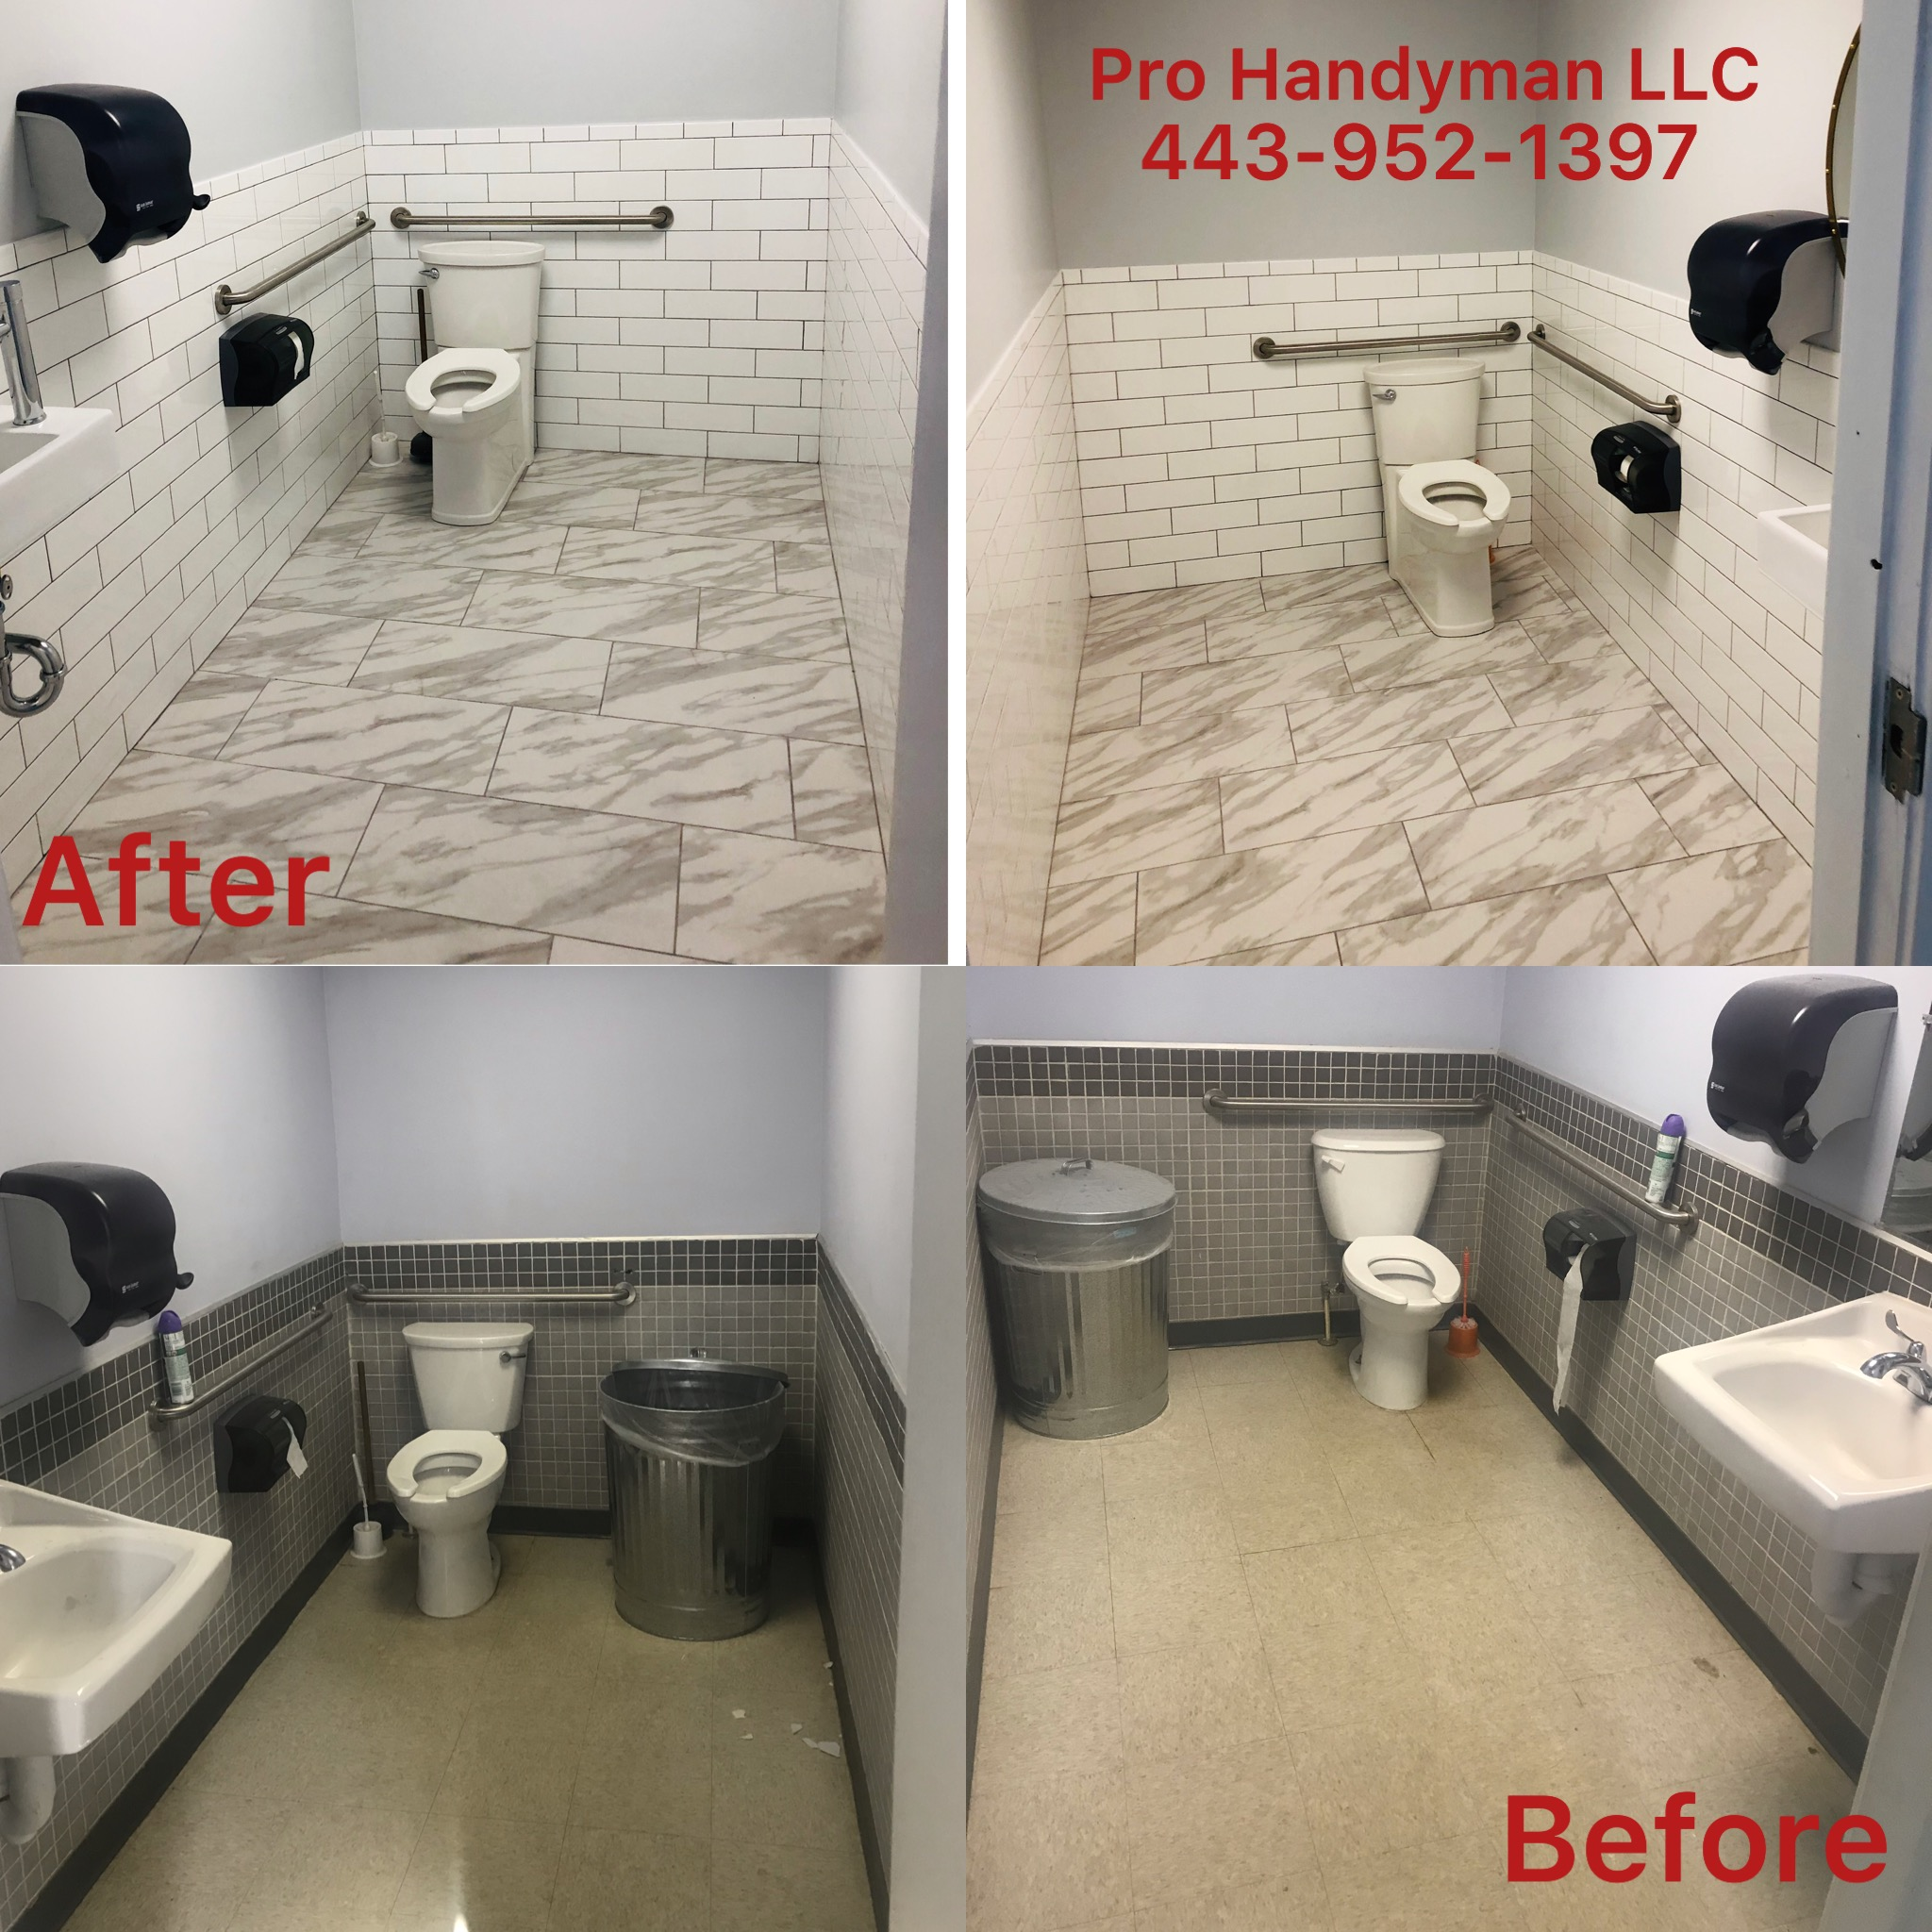 Full Commercial Bathroom Remodel